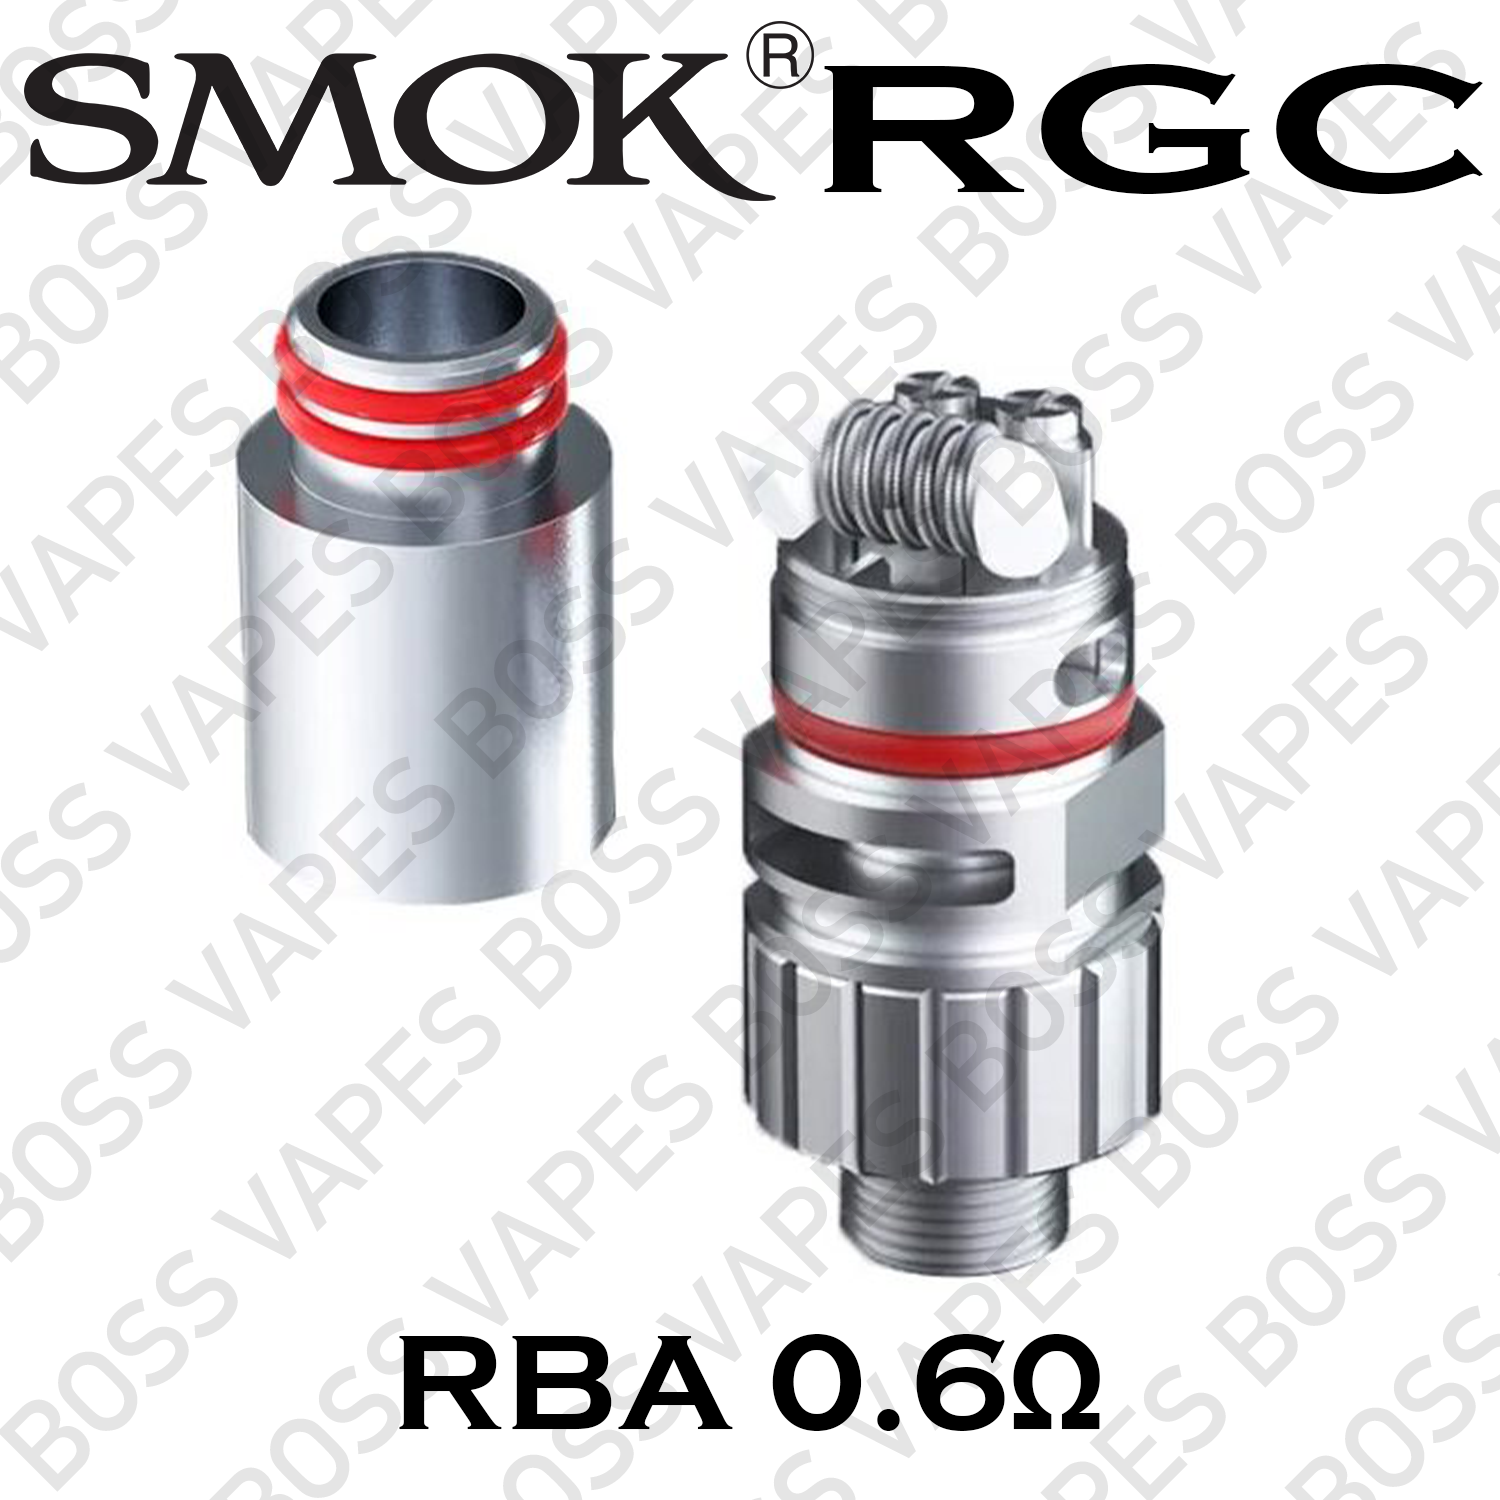 SMOK RGC RBA COIL (1 PACK) - Boss Vapes